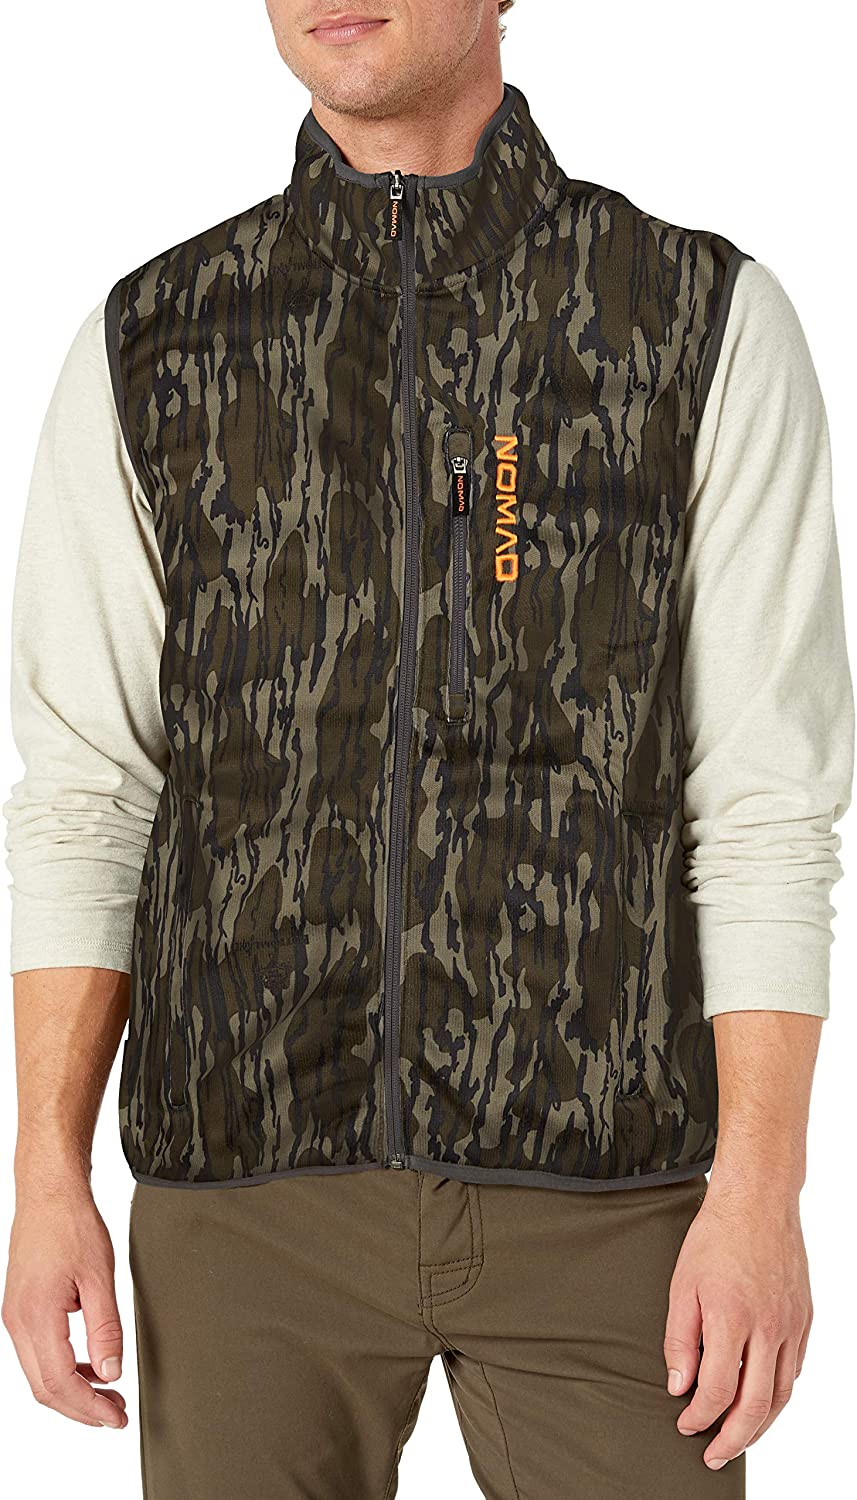 Nomad mens Slaysman Camo Limited price sale Outlet sale feature Vest Fleece S Hunting With Scent